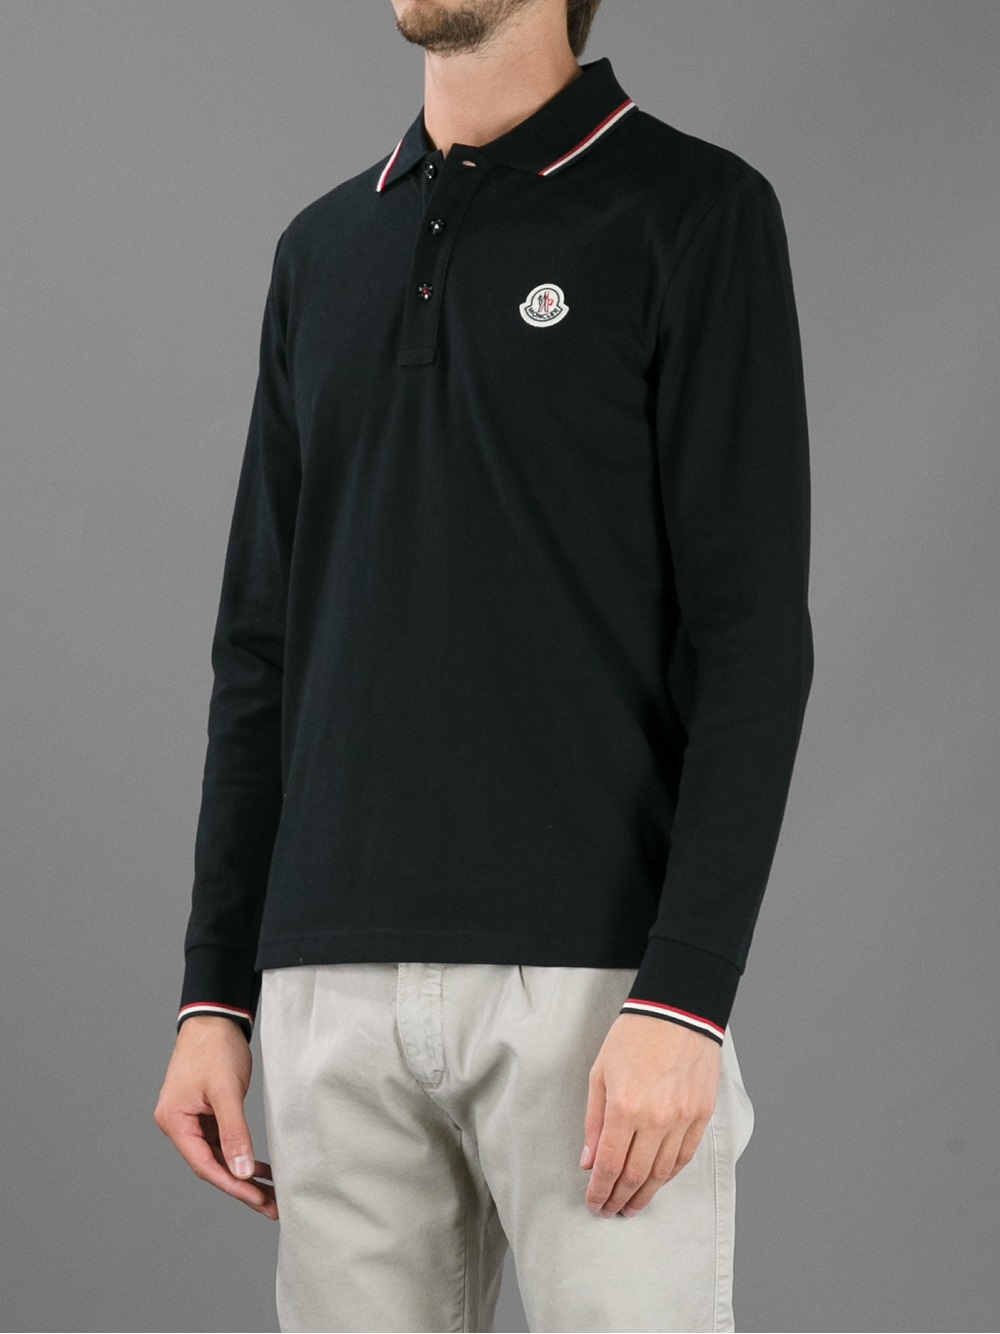 0784a3c4187c Moncler Long Sleeve Polo Shirt in Black for Men - Lyst